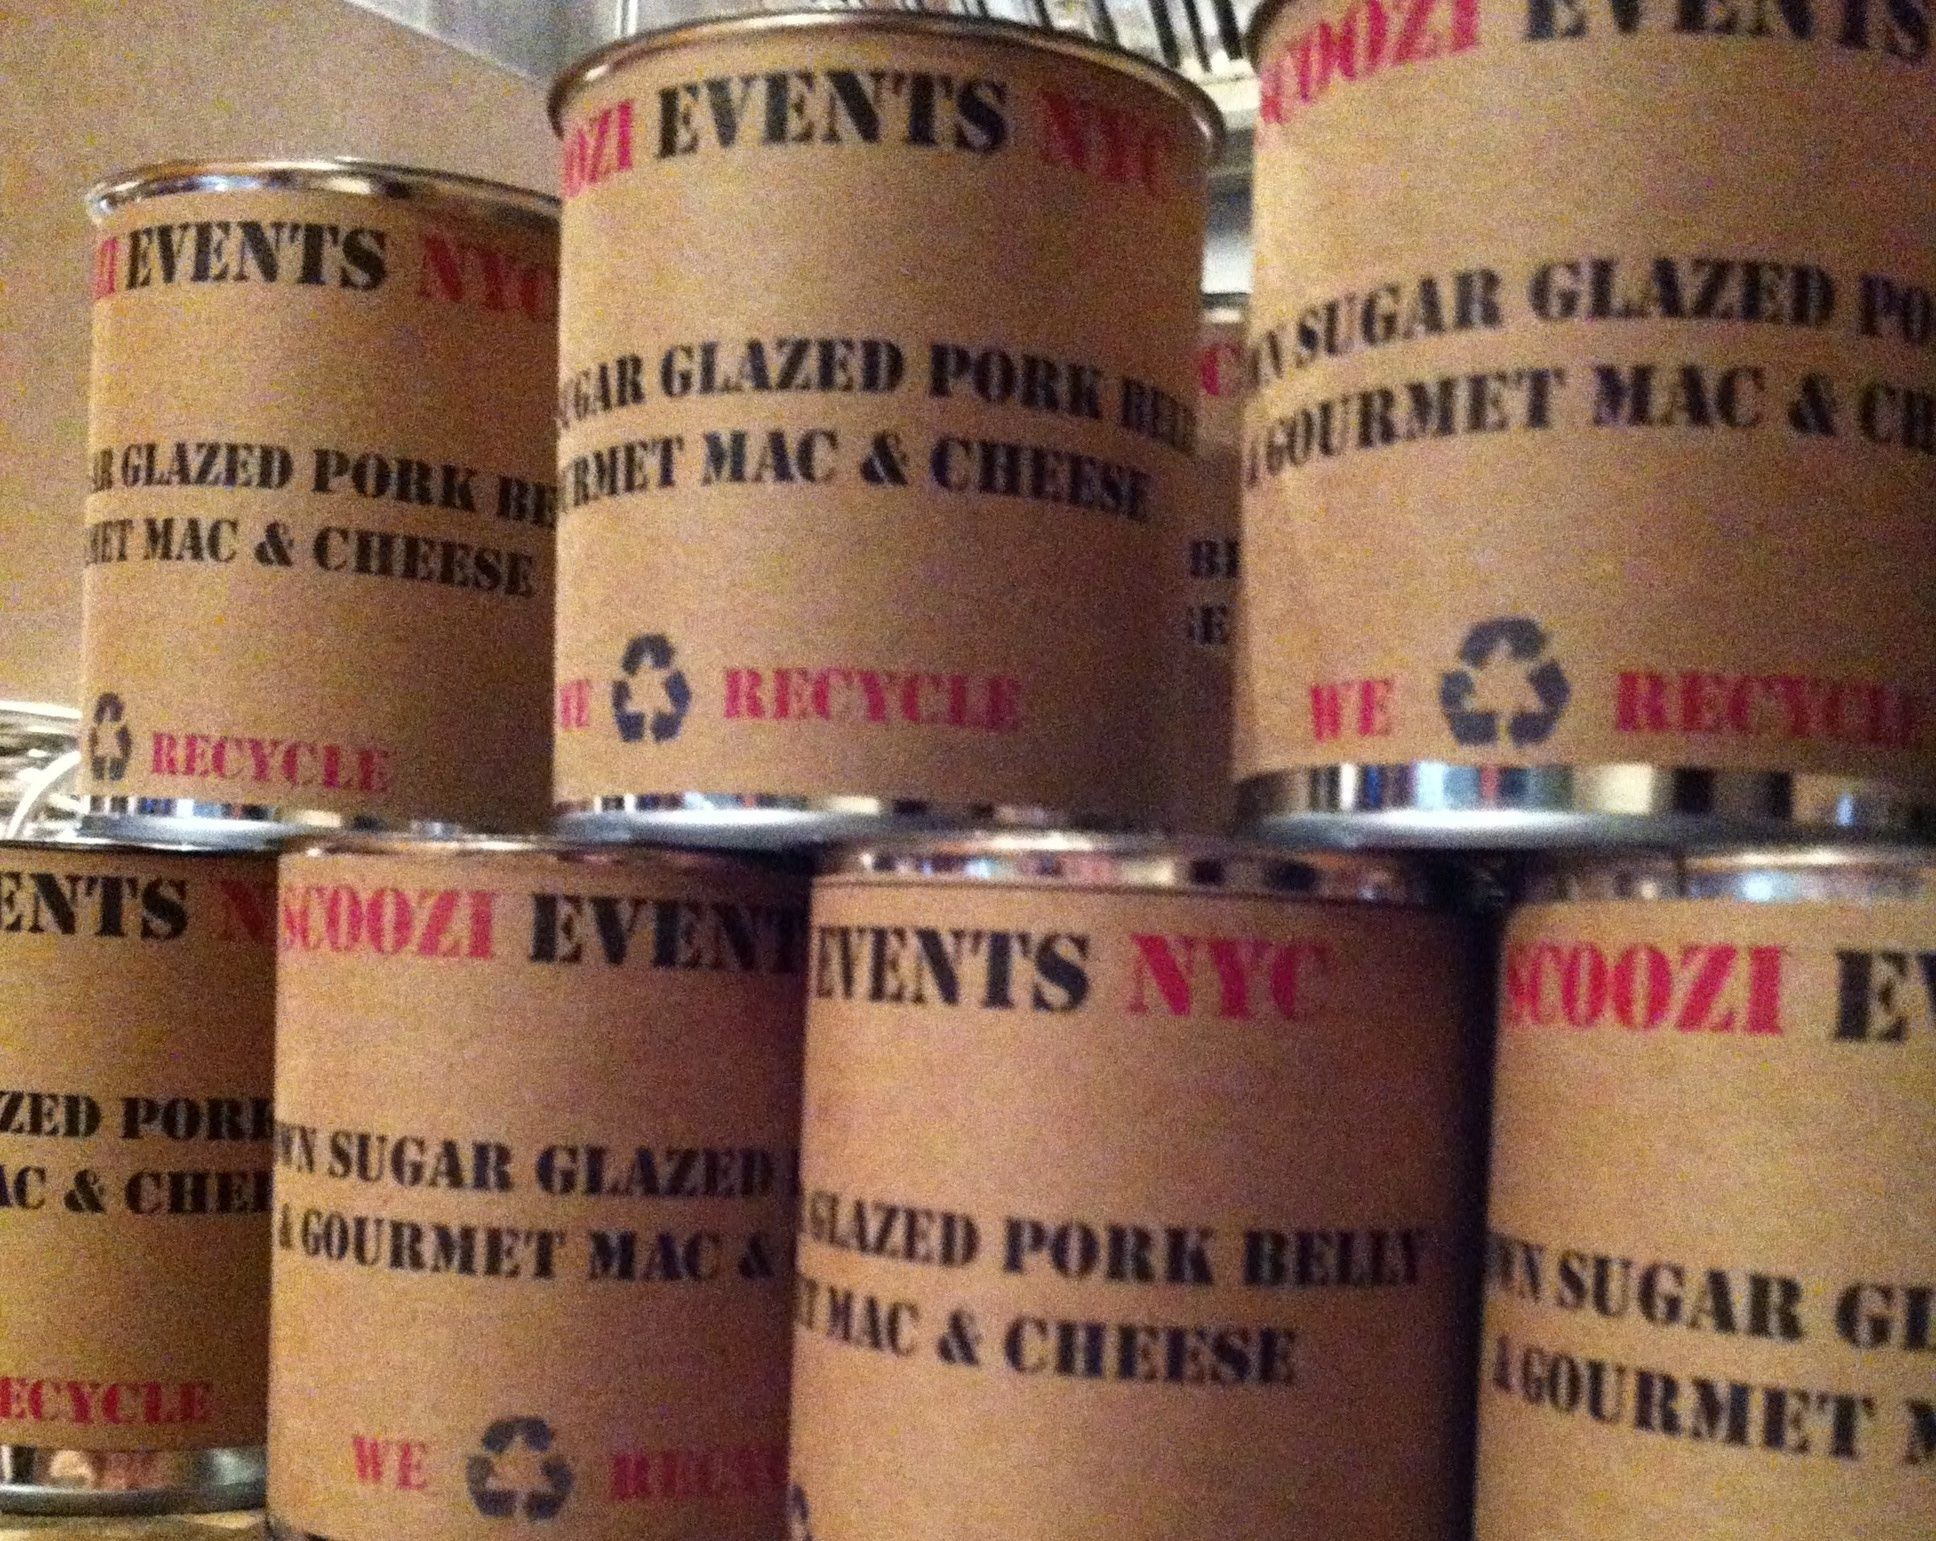 Scoozi's Brown Sugar Glazed Pork Belly and Gourmet Mac and Cheese served in Customized Cans